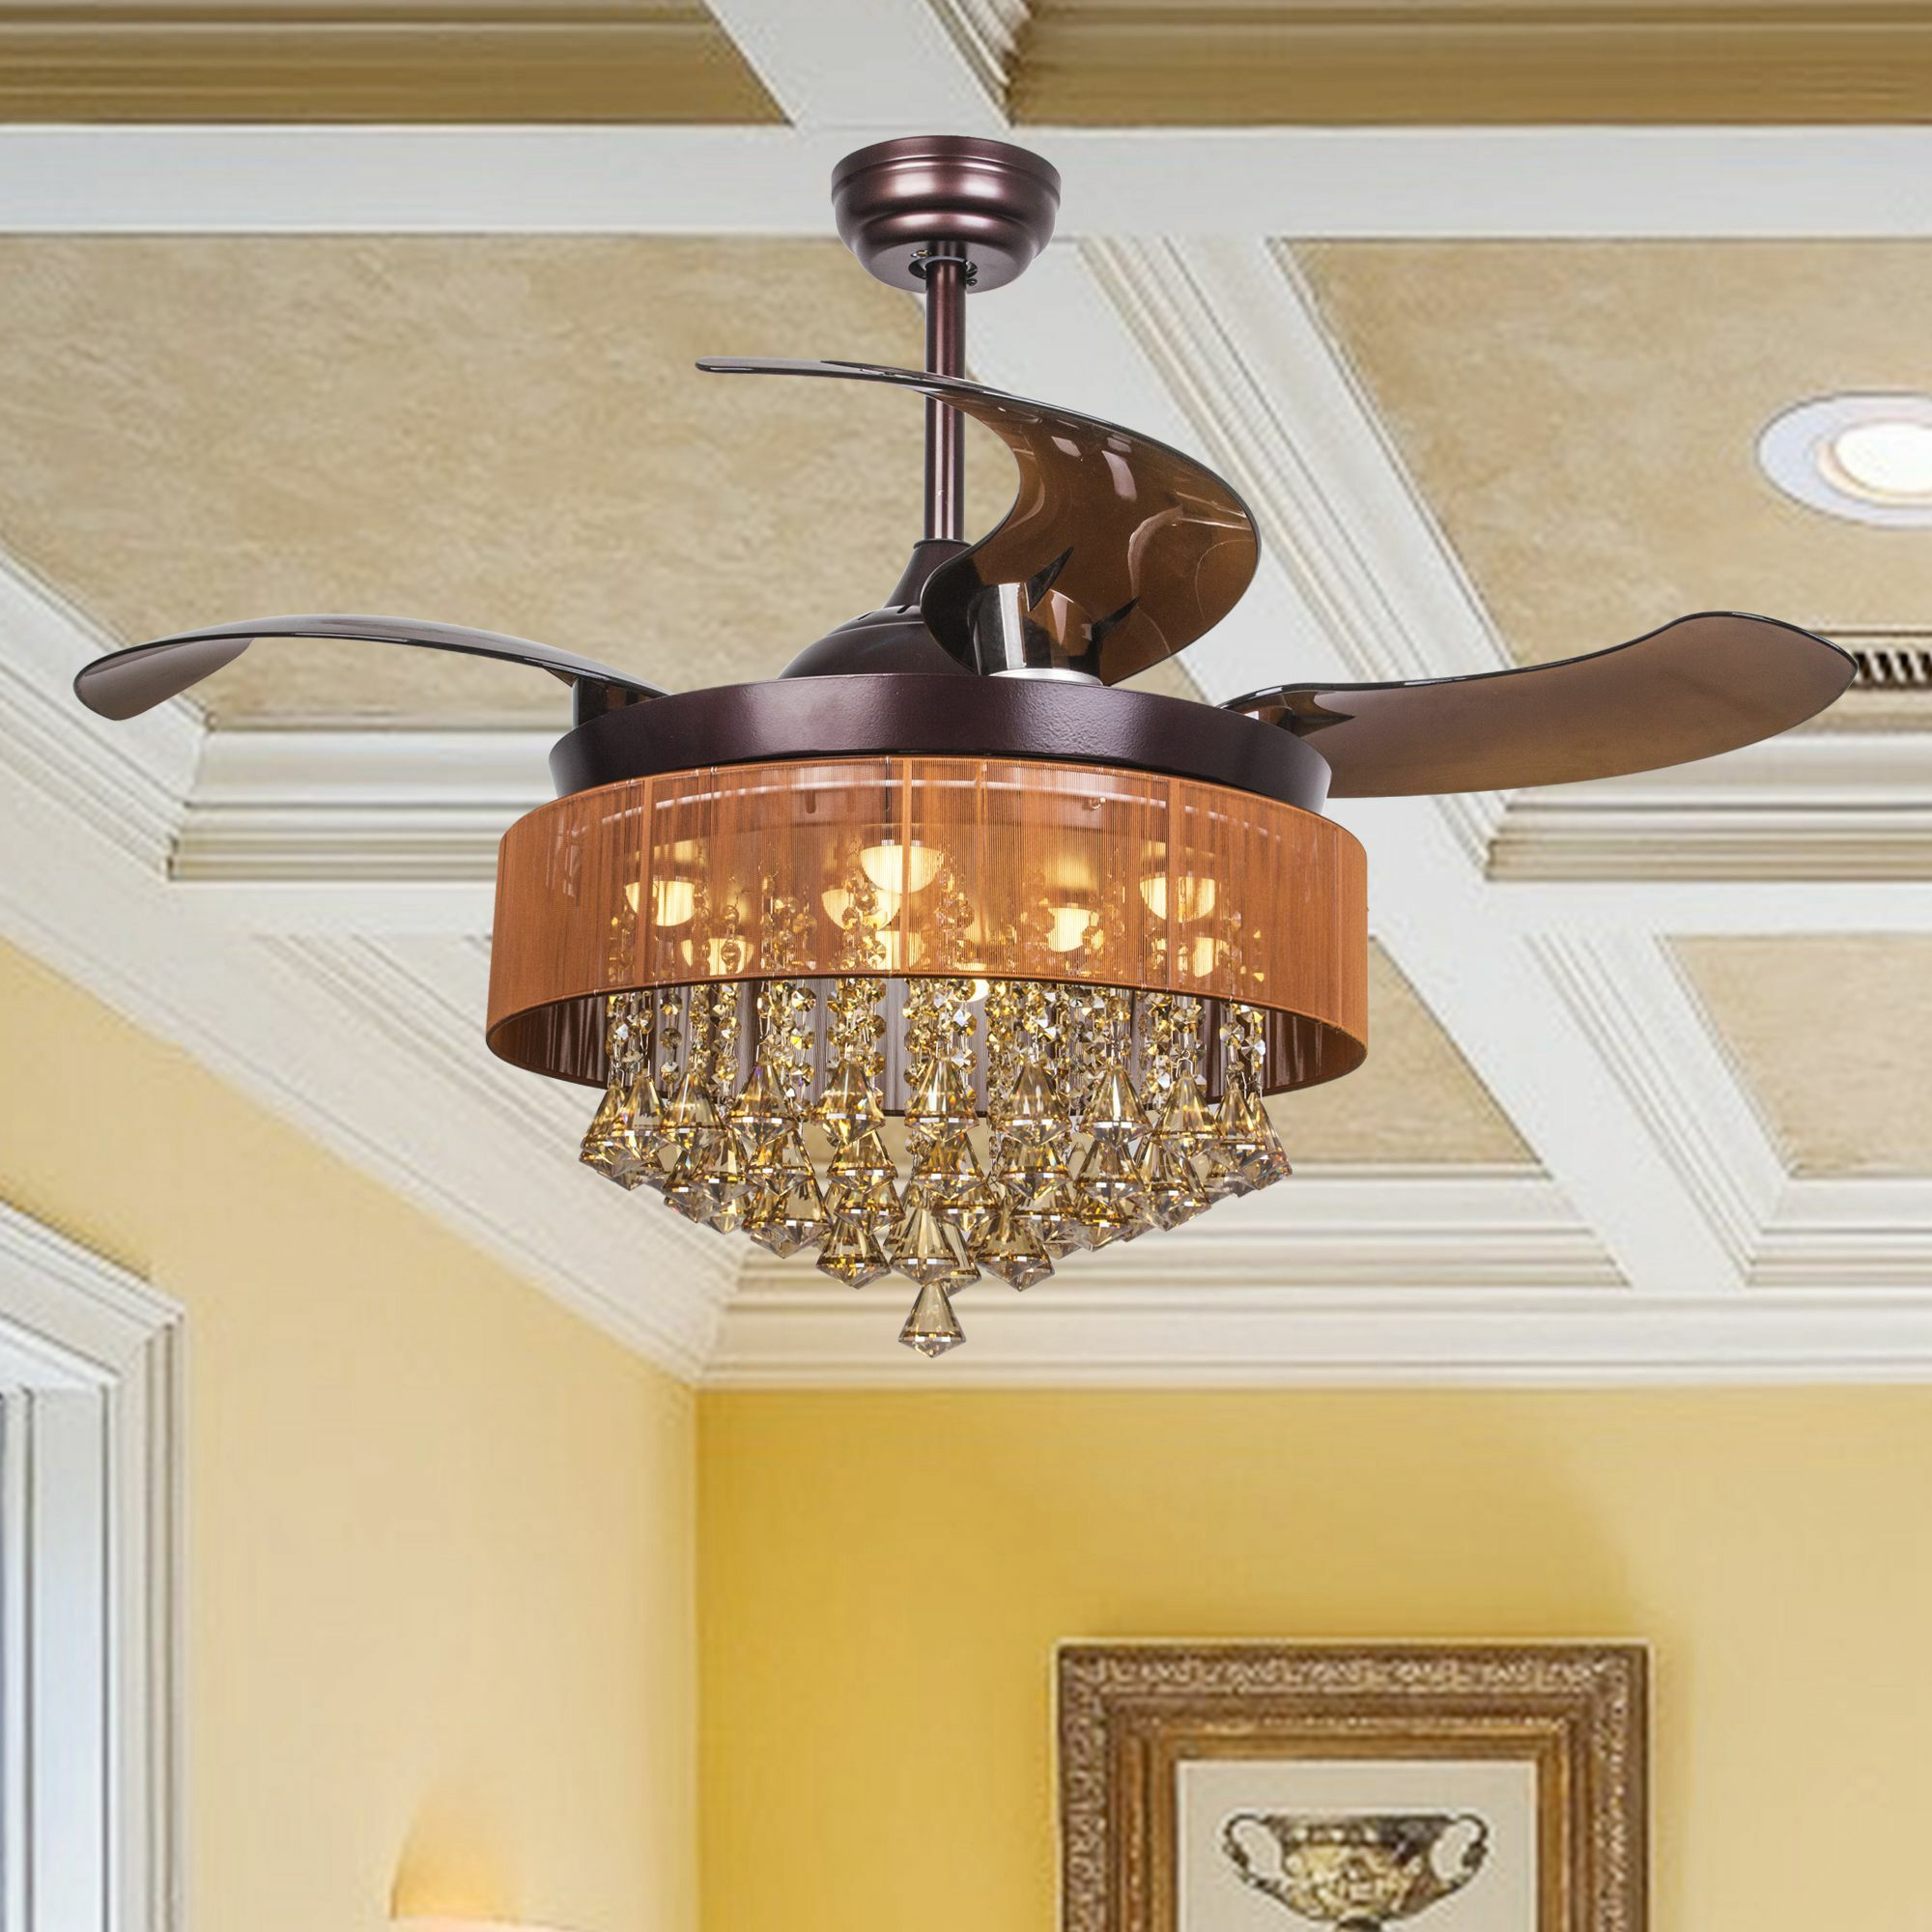 Birchley 4 Blade LED Ceiling Fan with Remote Finish: Oil Rubbed Bronze